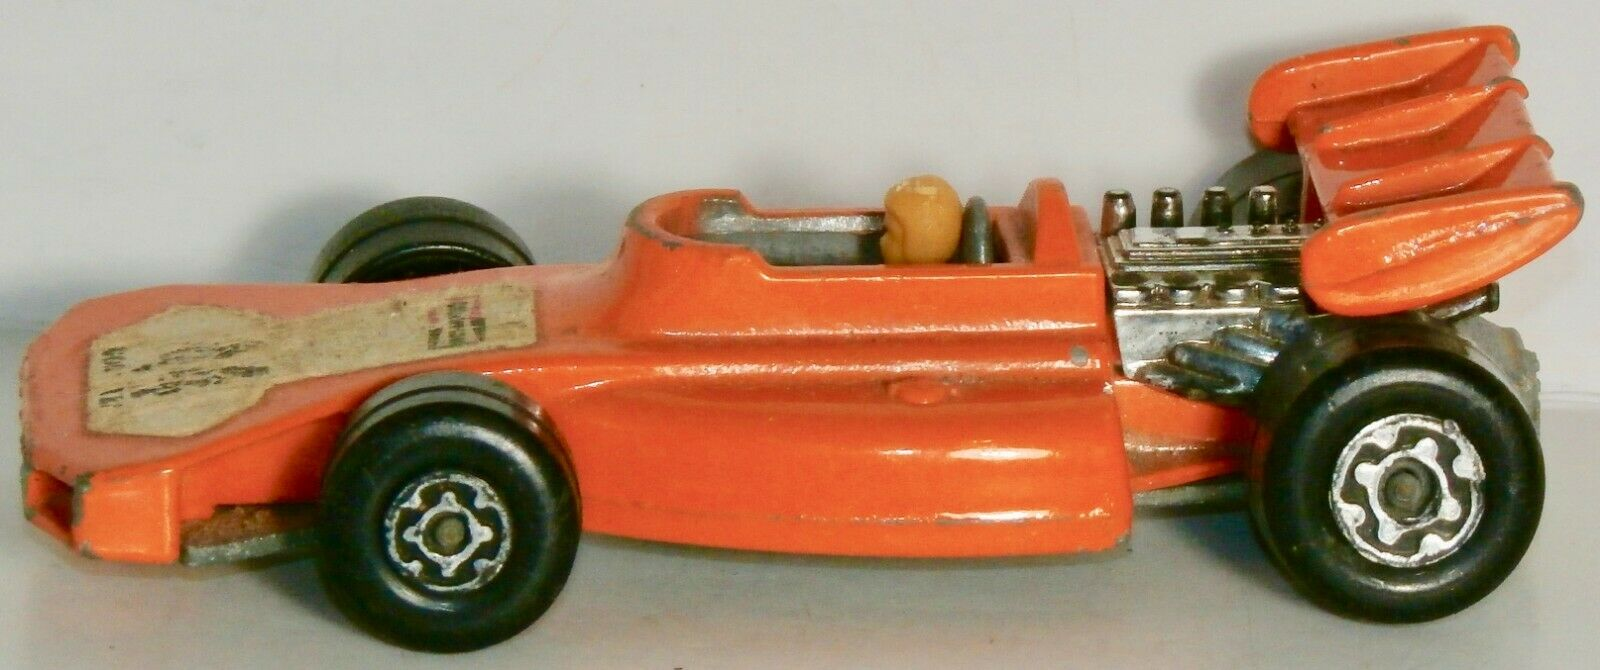 MATCHBOX SUPERFAST orange 44 TEAM MATCHBOX MADE IN ENGLAND BY LESNEY 1973